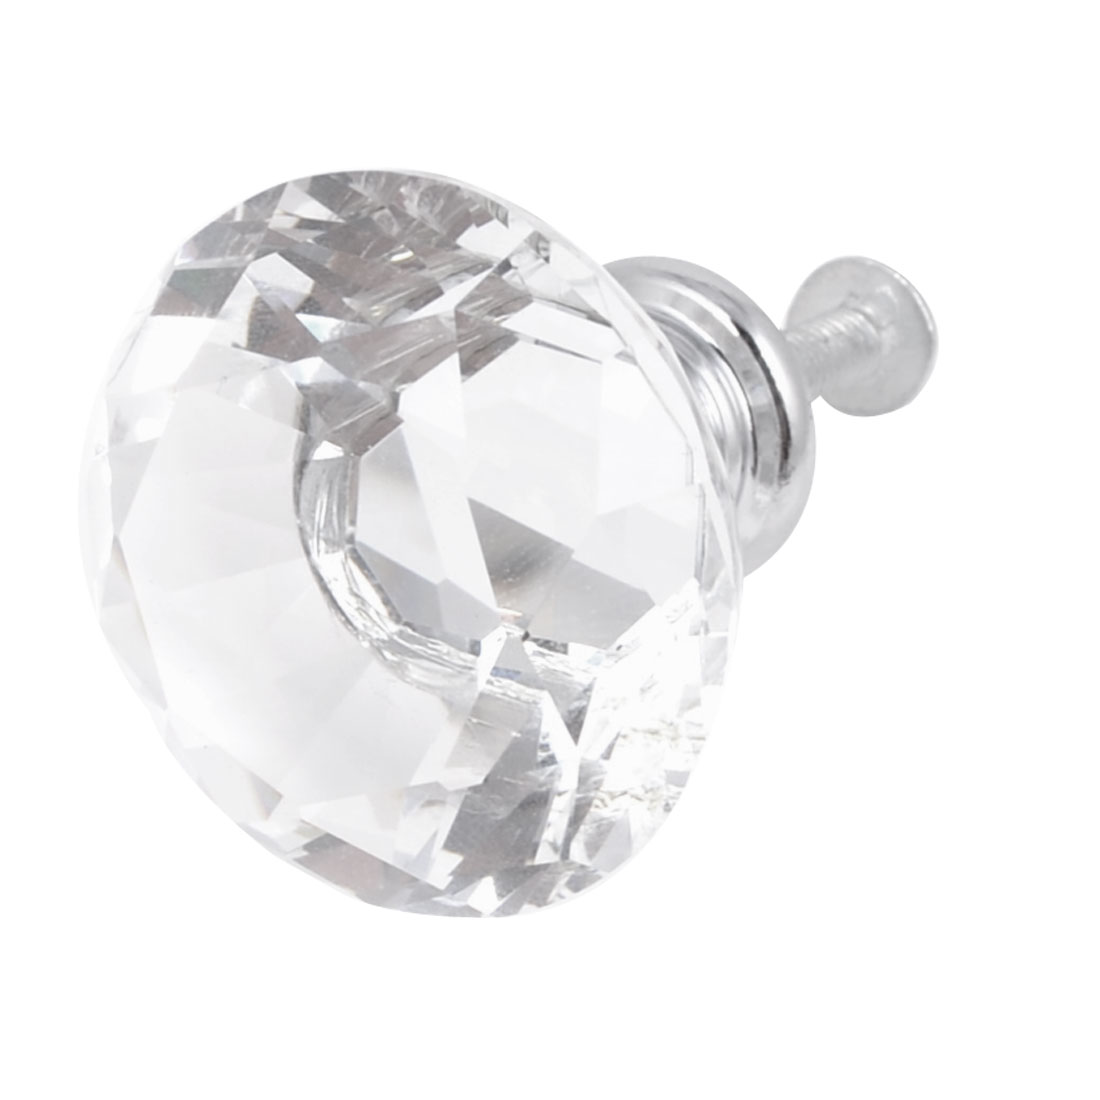 "Drawer Dresser Silver Tone Base 1.3"" Diameter Clear Plastic Shiny Faux Crystal Top Pull Knob Handle"